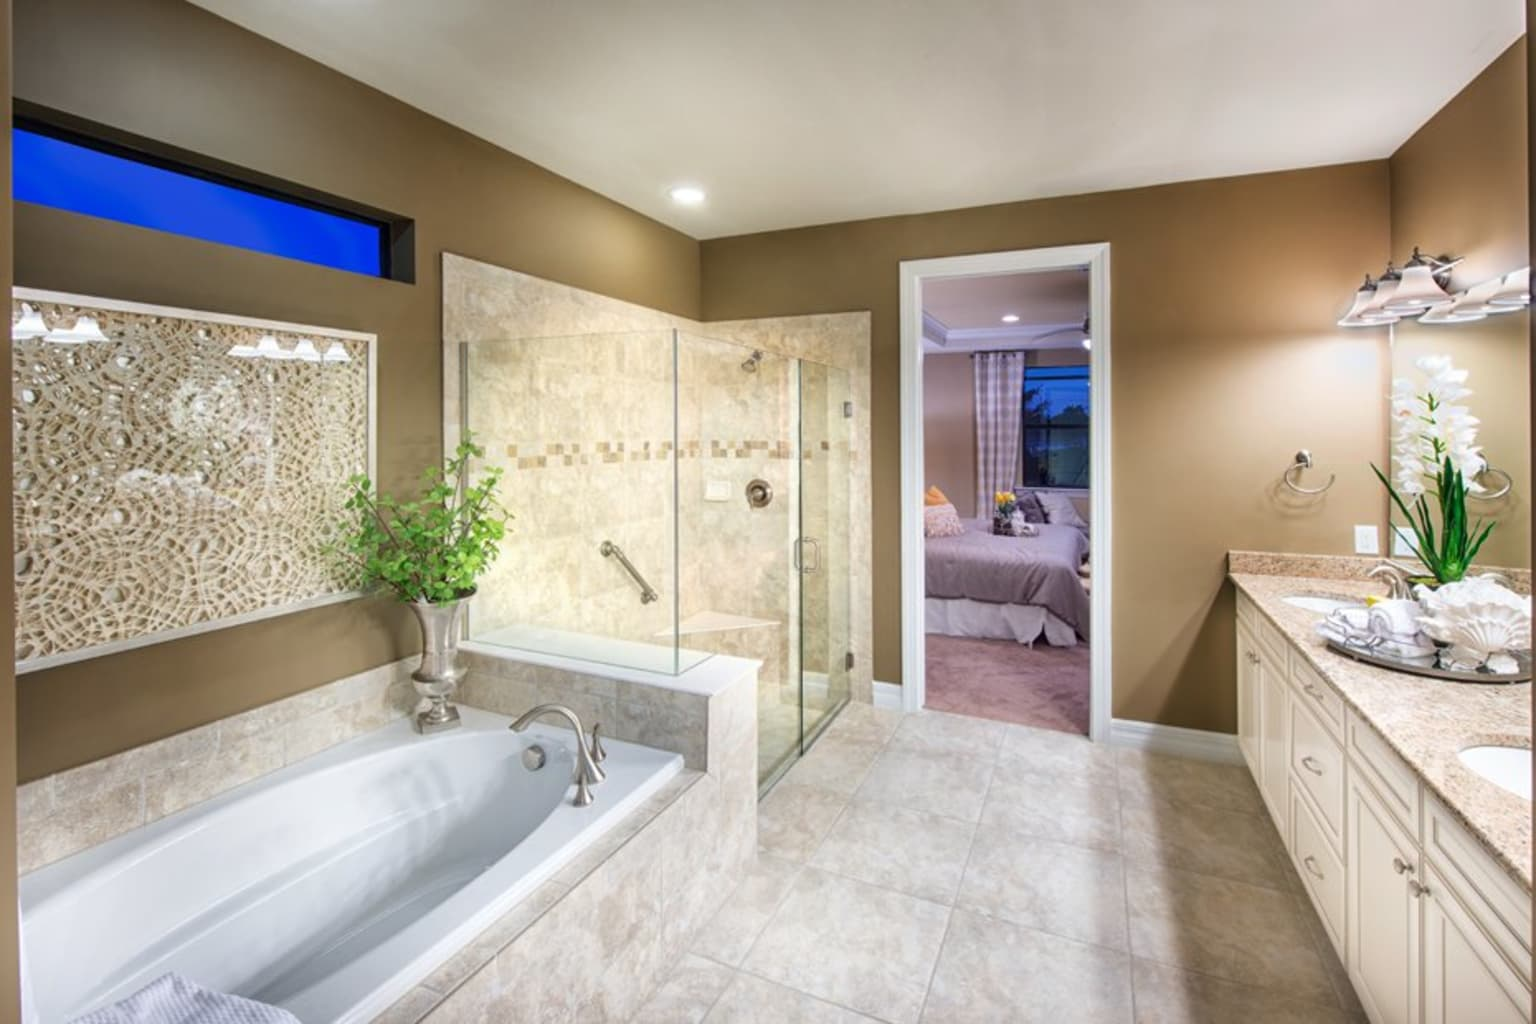 Soaking tub upgrade